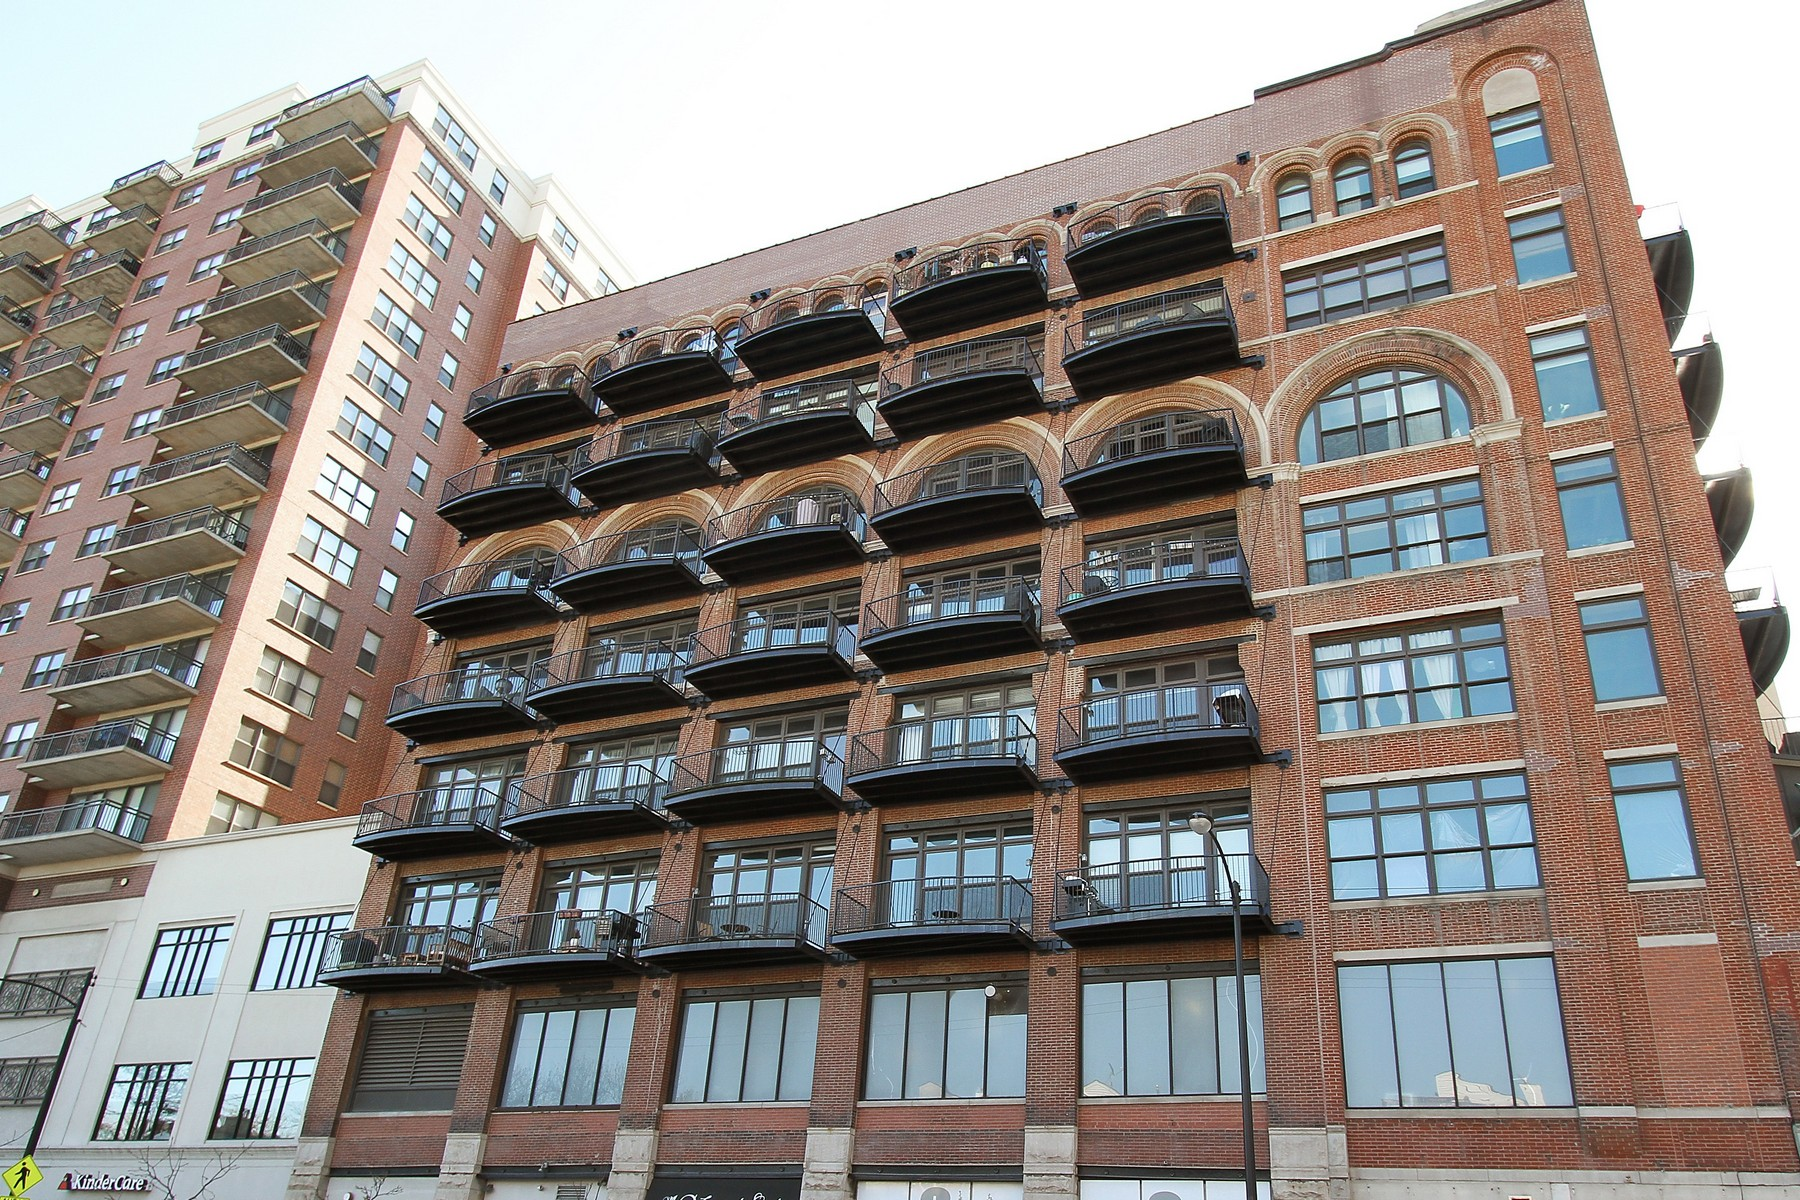 Condominium for Sale at One of a Kind Home! 1503 S State Street Unit 308 Near South Side, Chicago, Illinois, 60605 United States